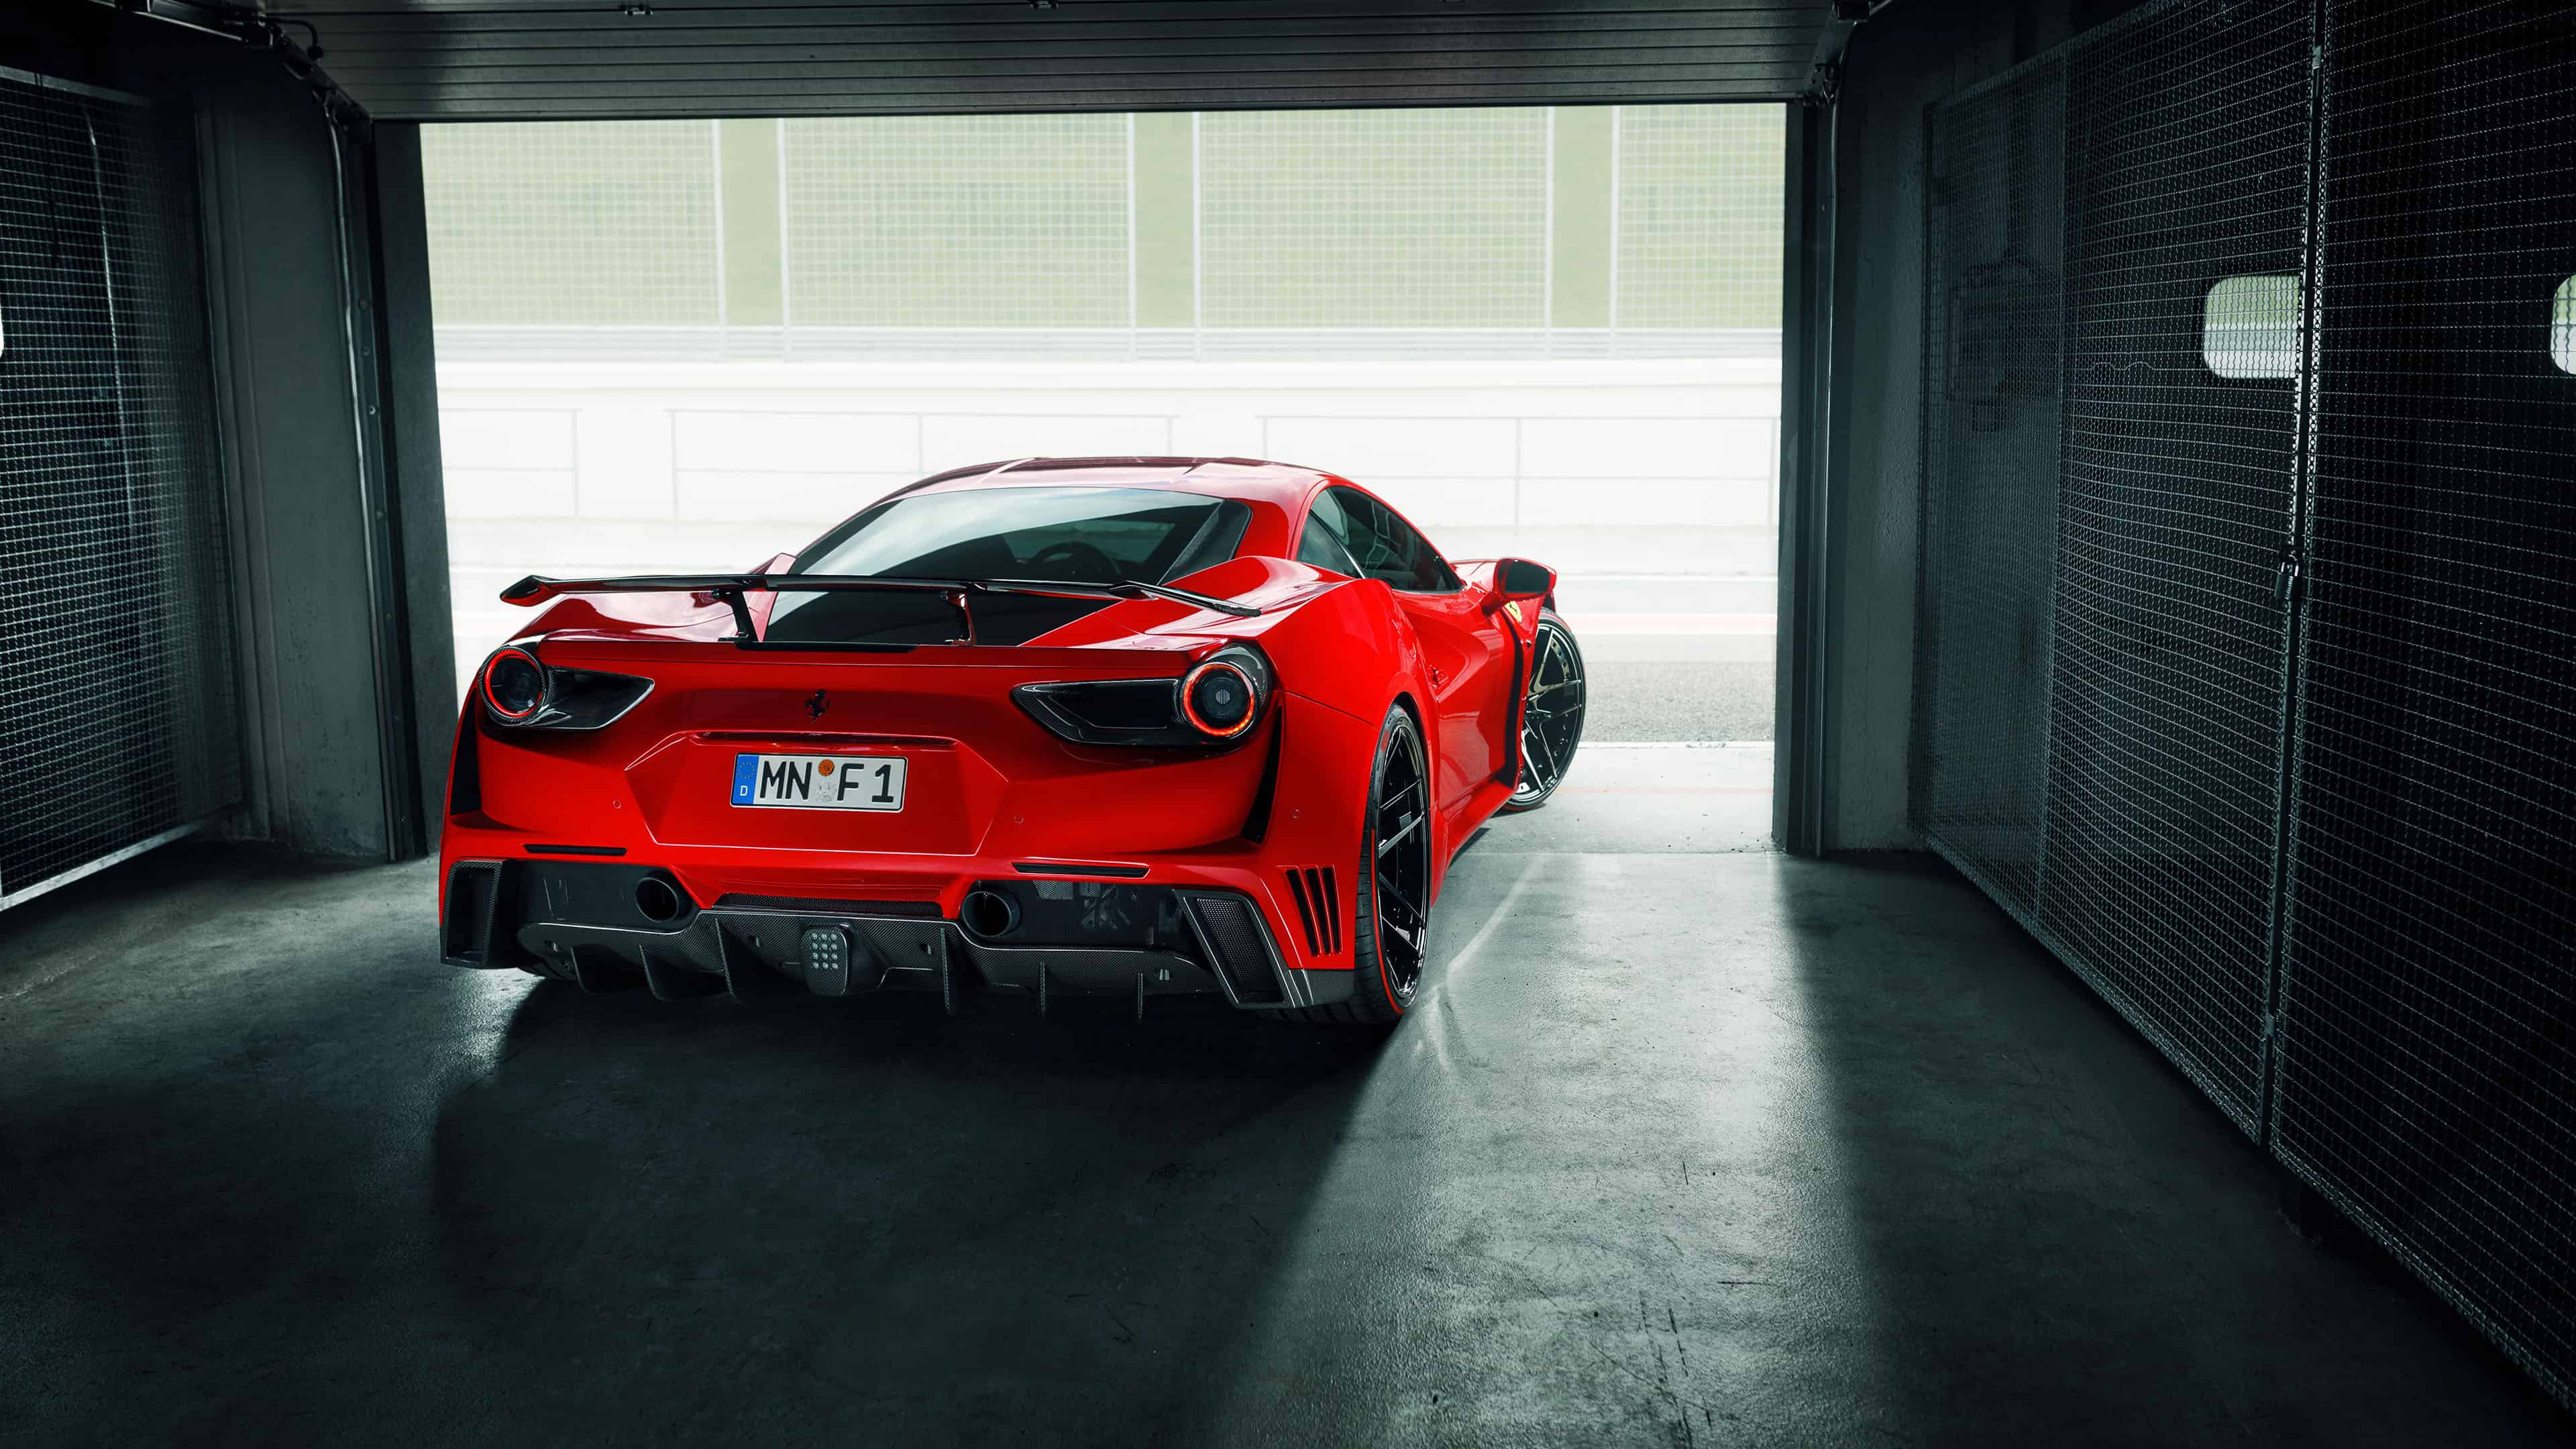 Ferrari 488 Gtb Back Uhd 4k Wallpaper Pixelz